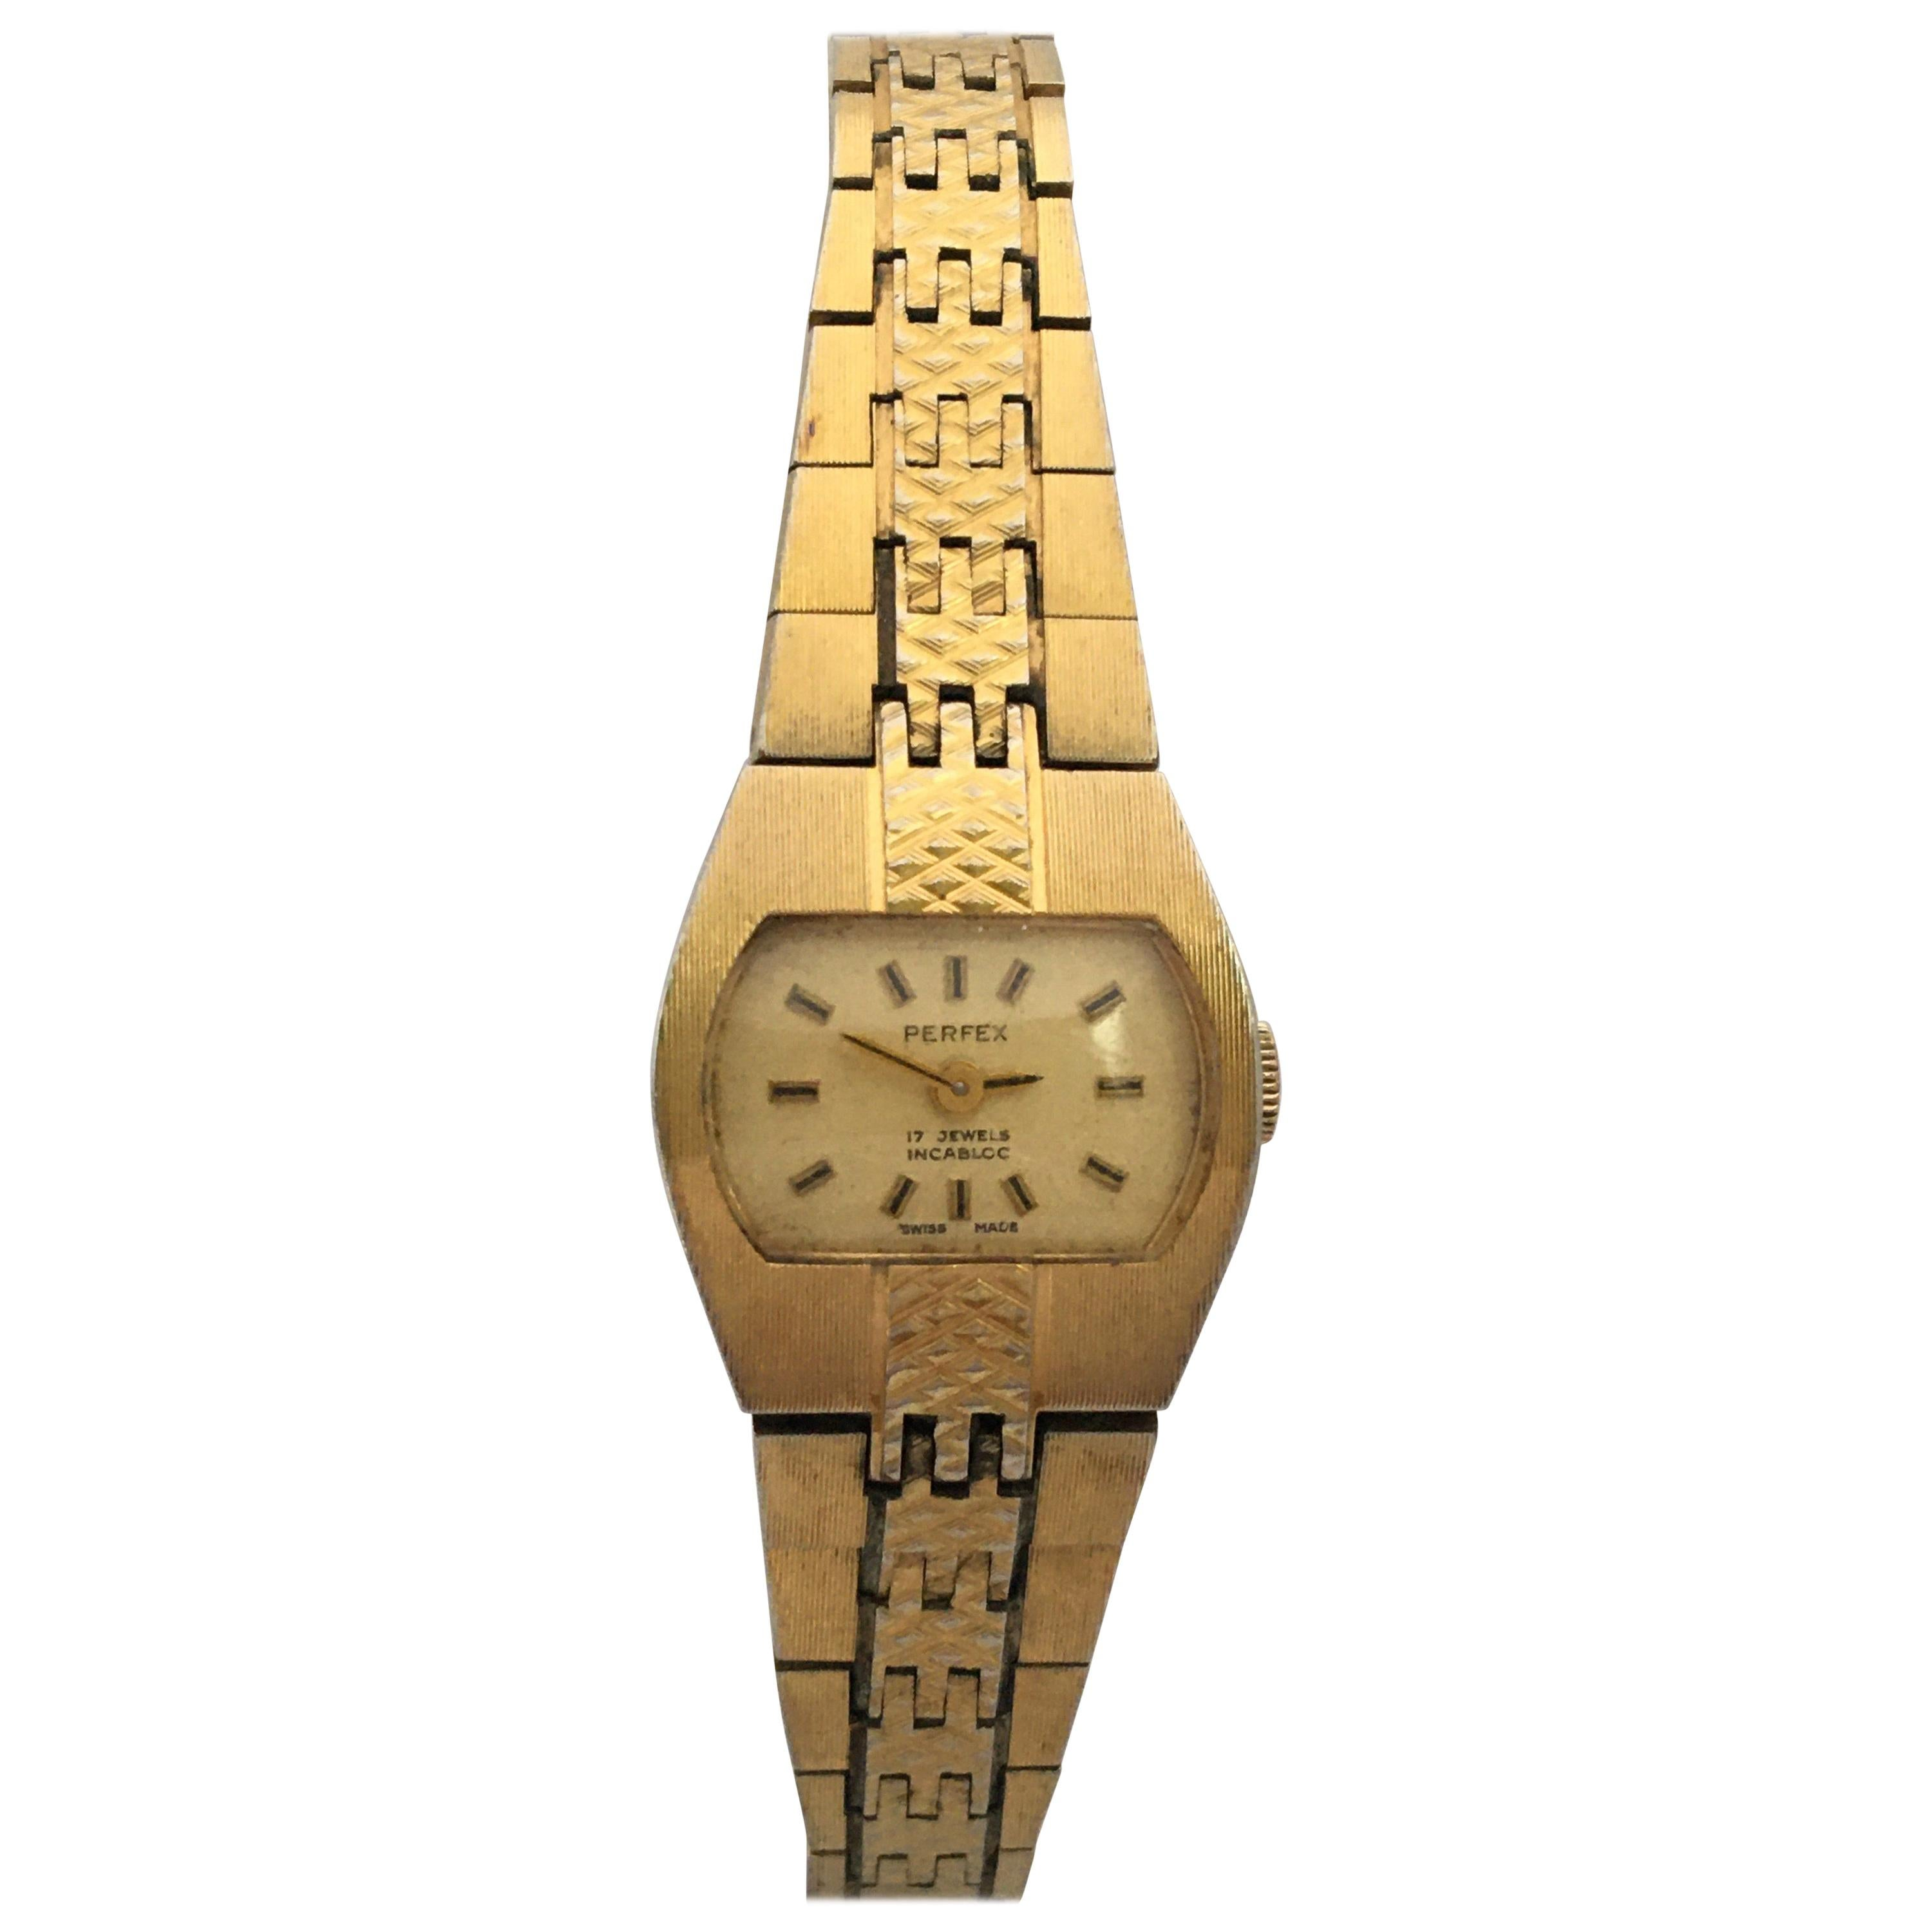 Vintage Gold-Plated 1980s Ladies Swiss Mechanical Watch